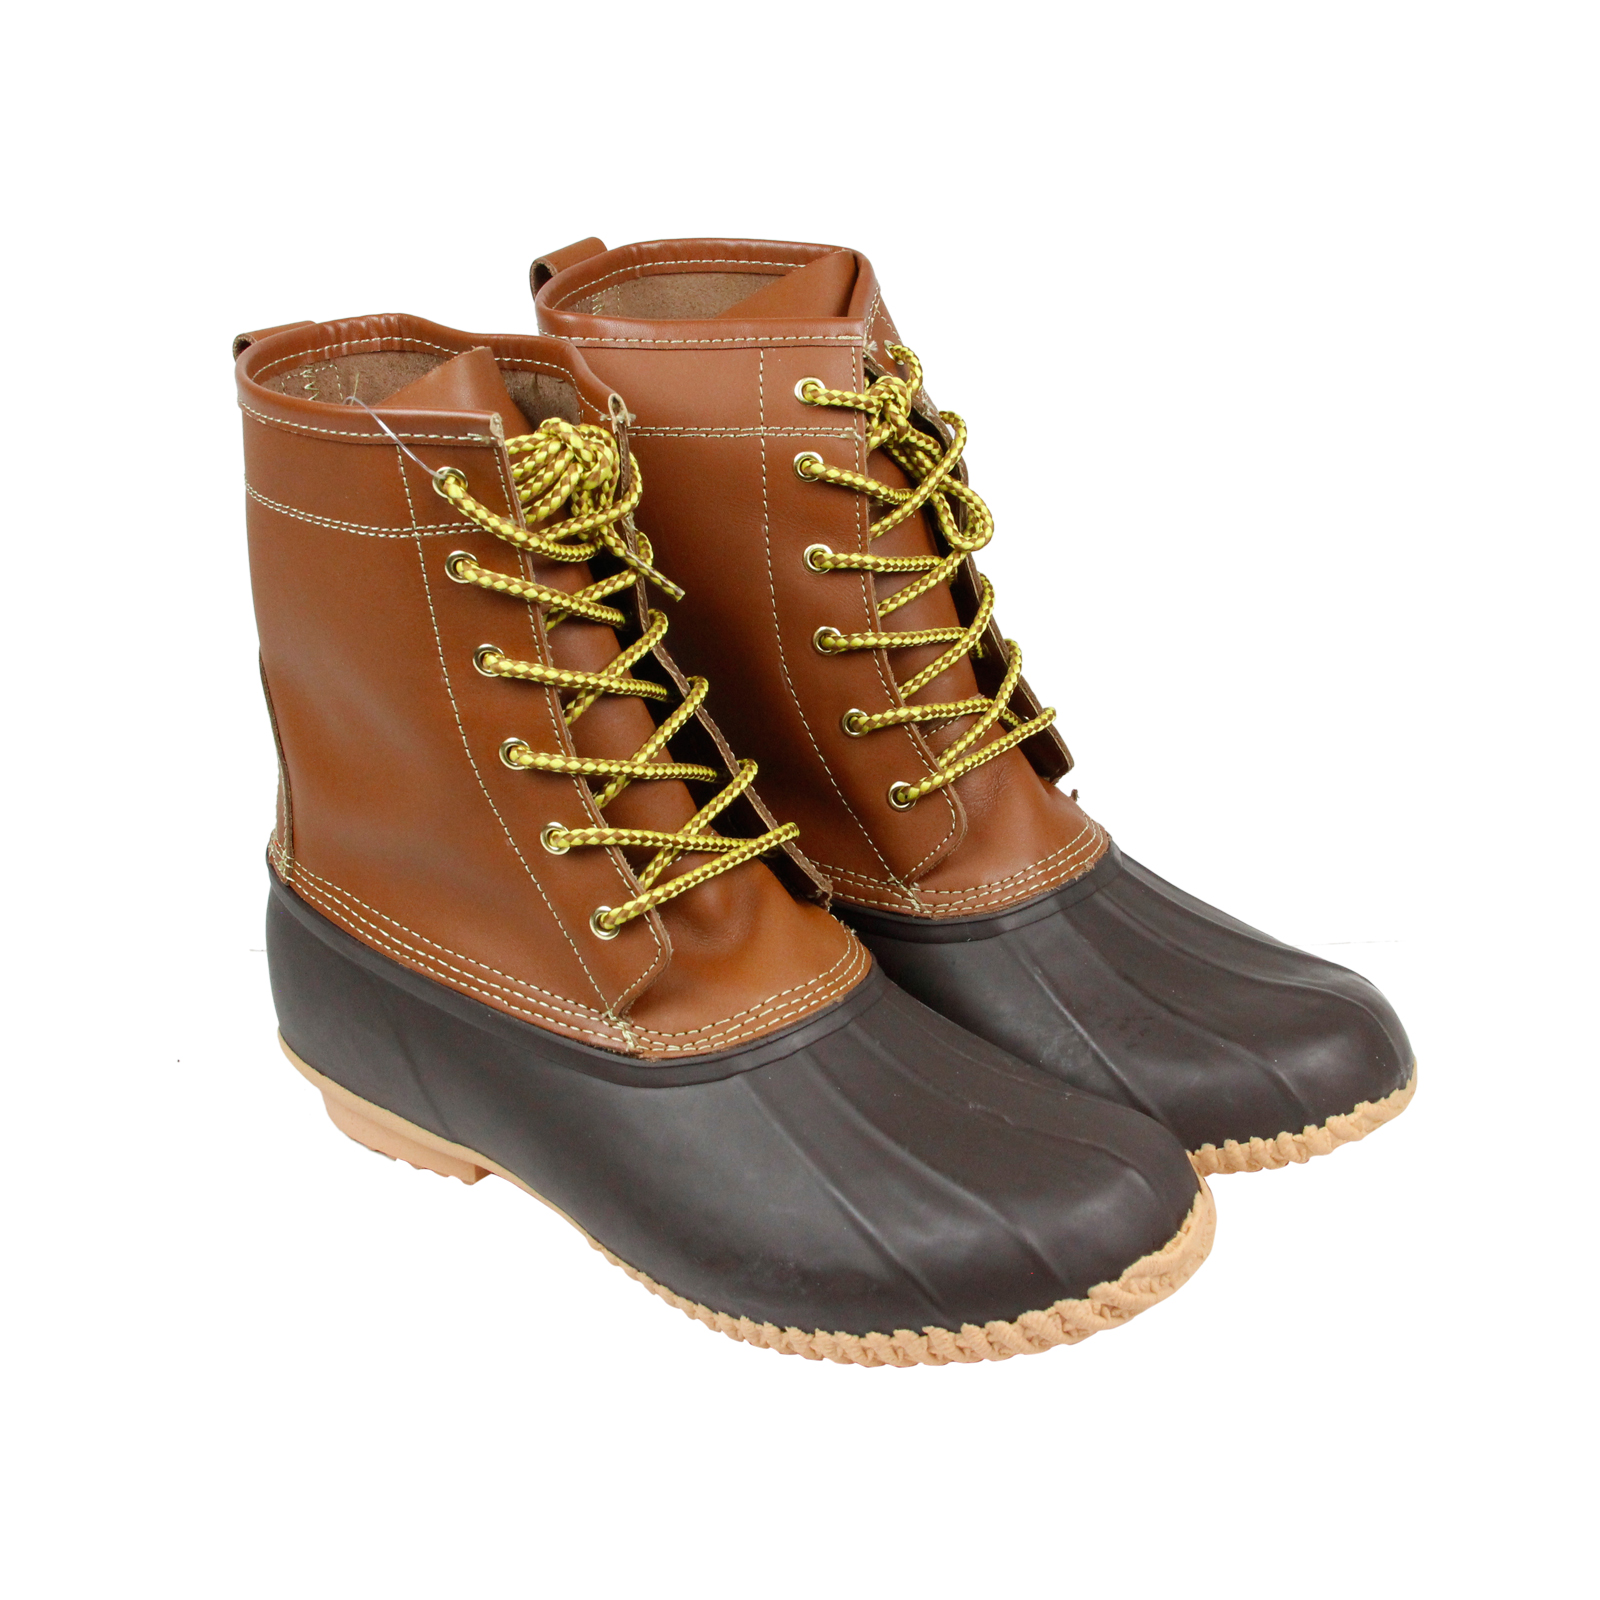 clarks crewson style mens leather lace up boots shoes